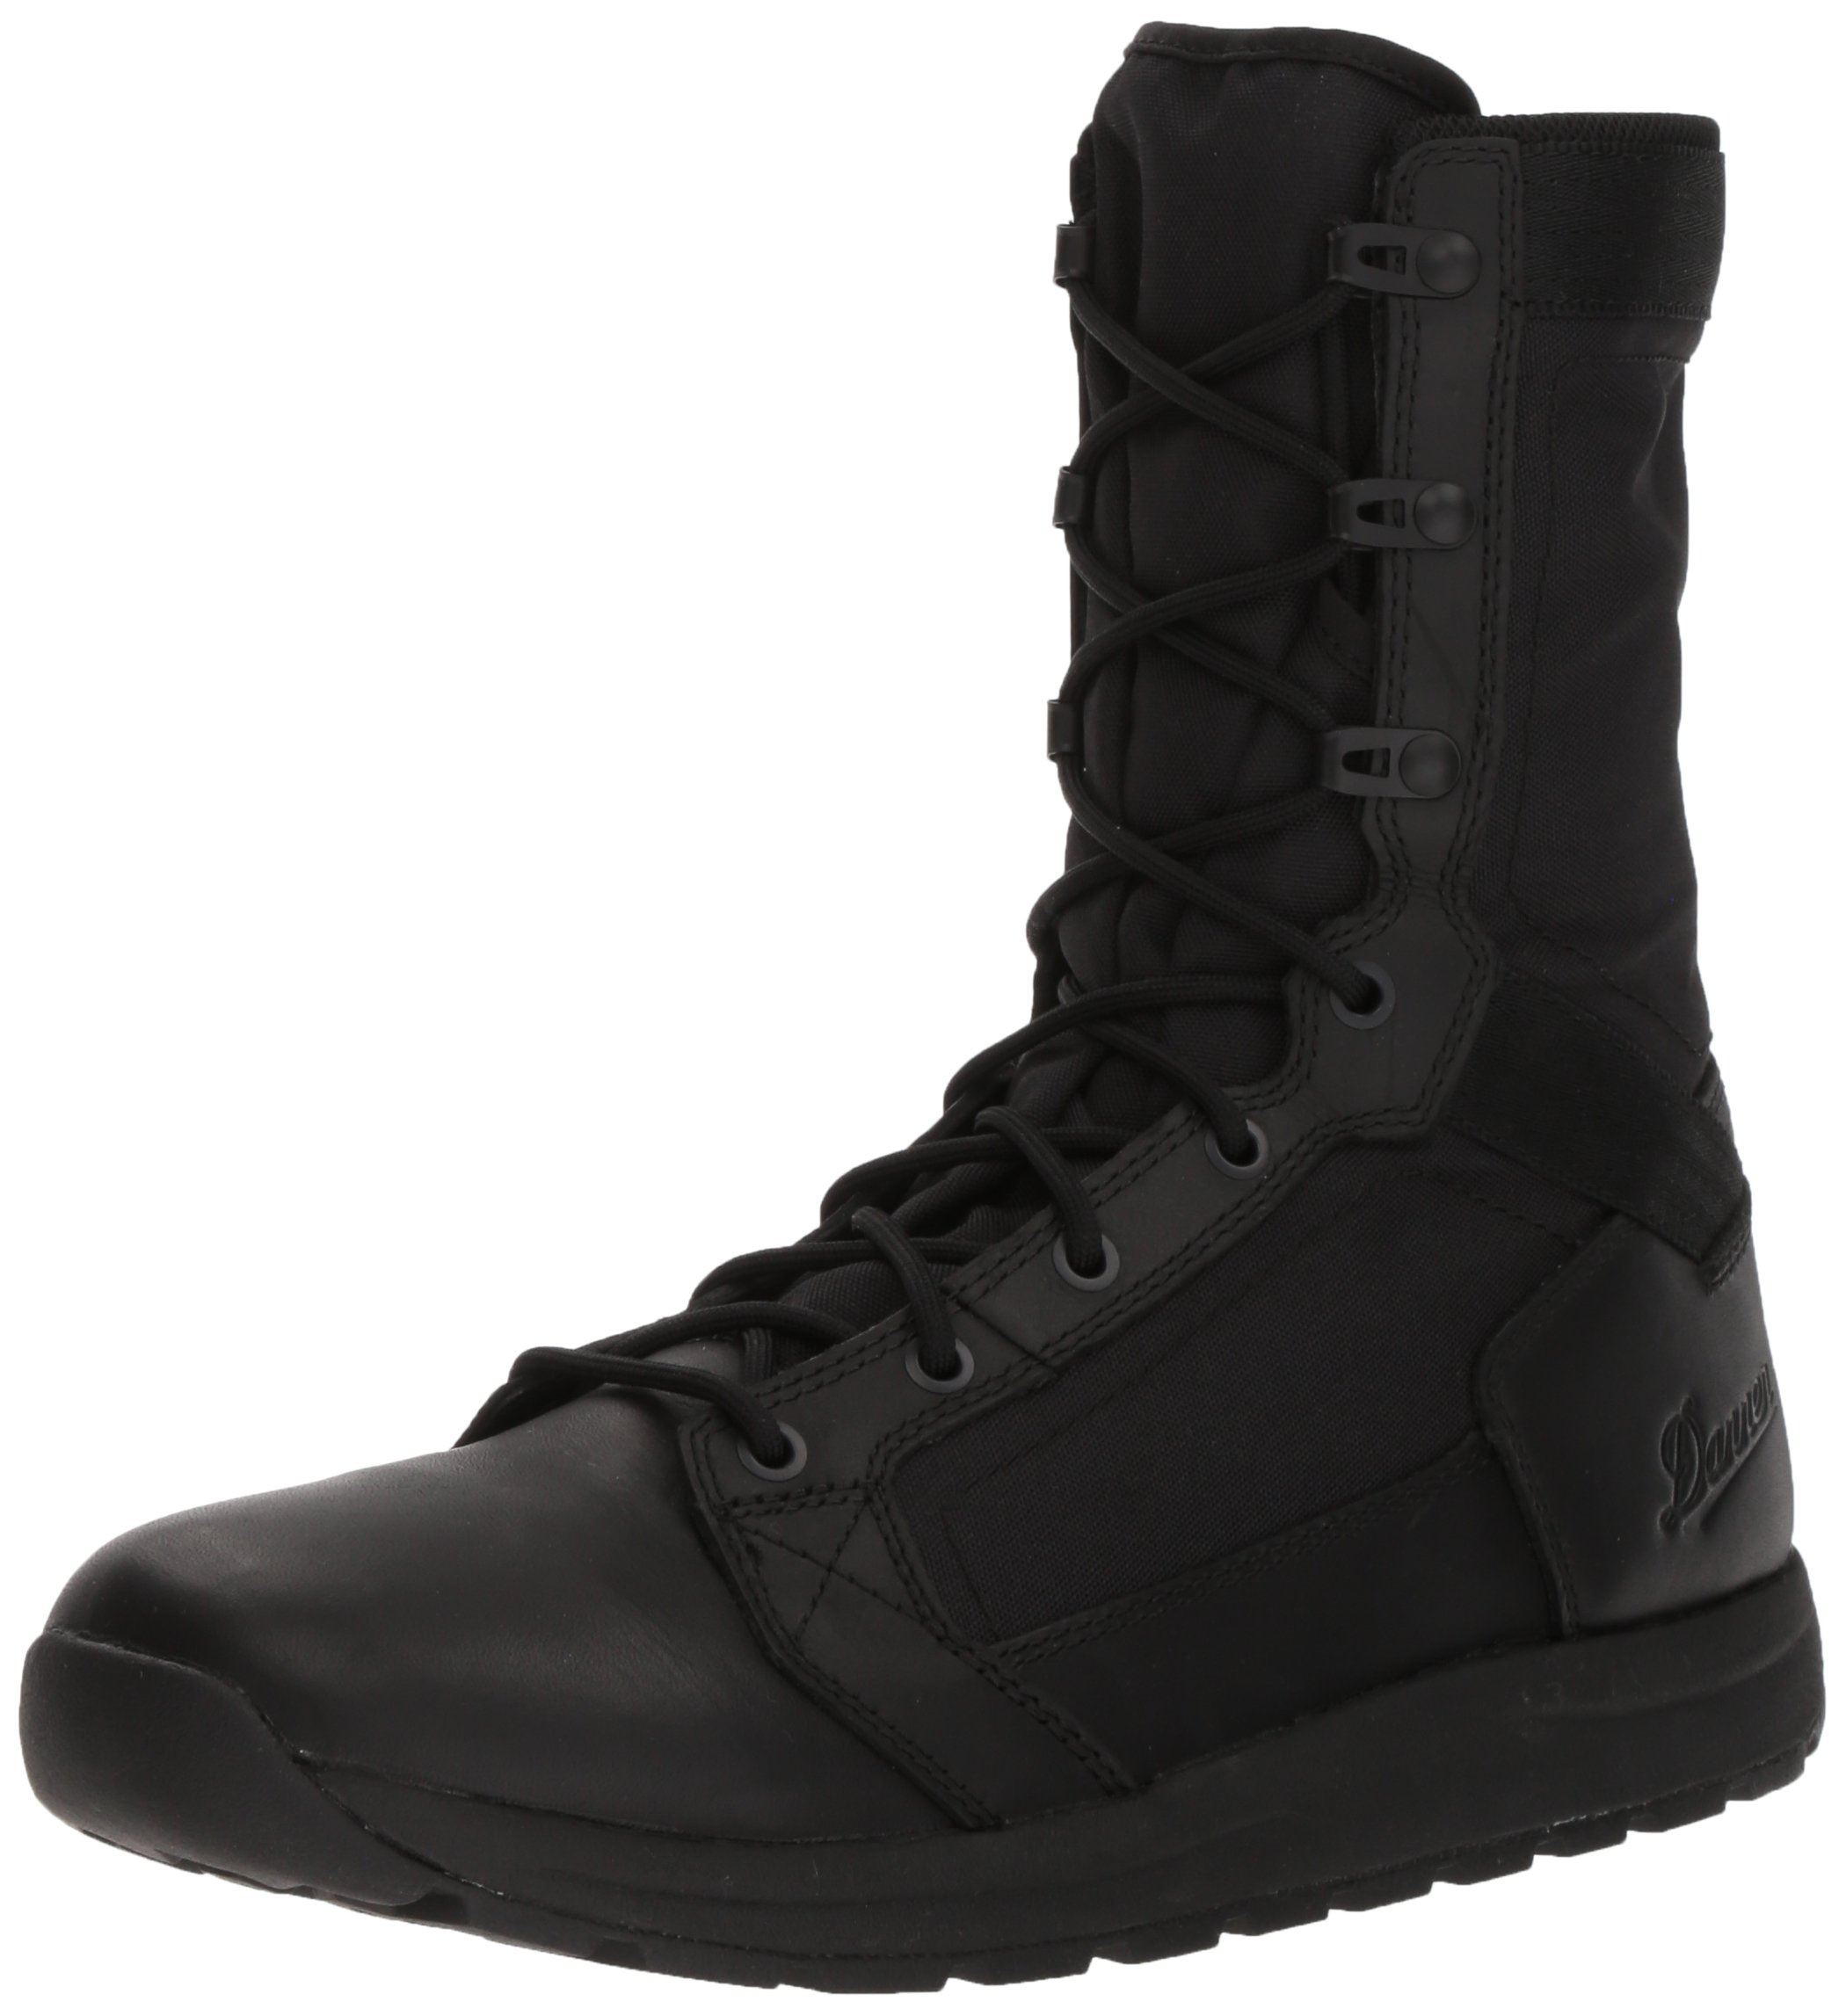 Danner Men's Tachyon 8'' Military and Tactical Boot, Polishable Black Hot, 9.5 2E US by Danner